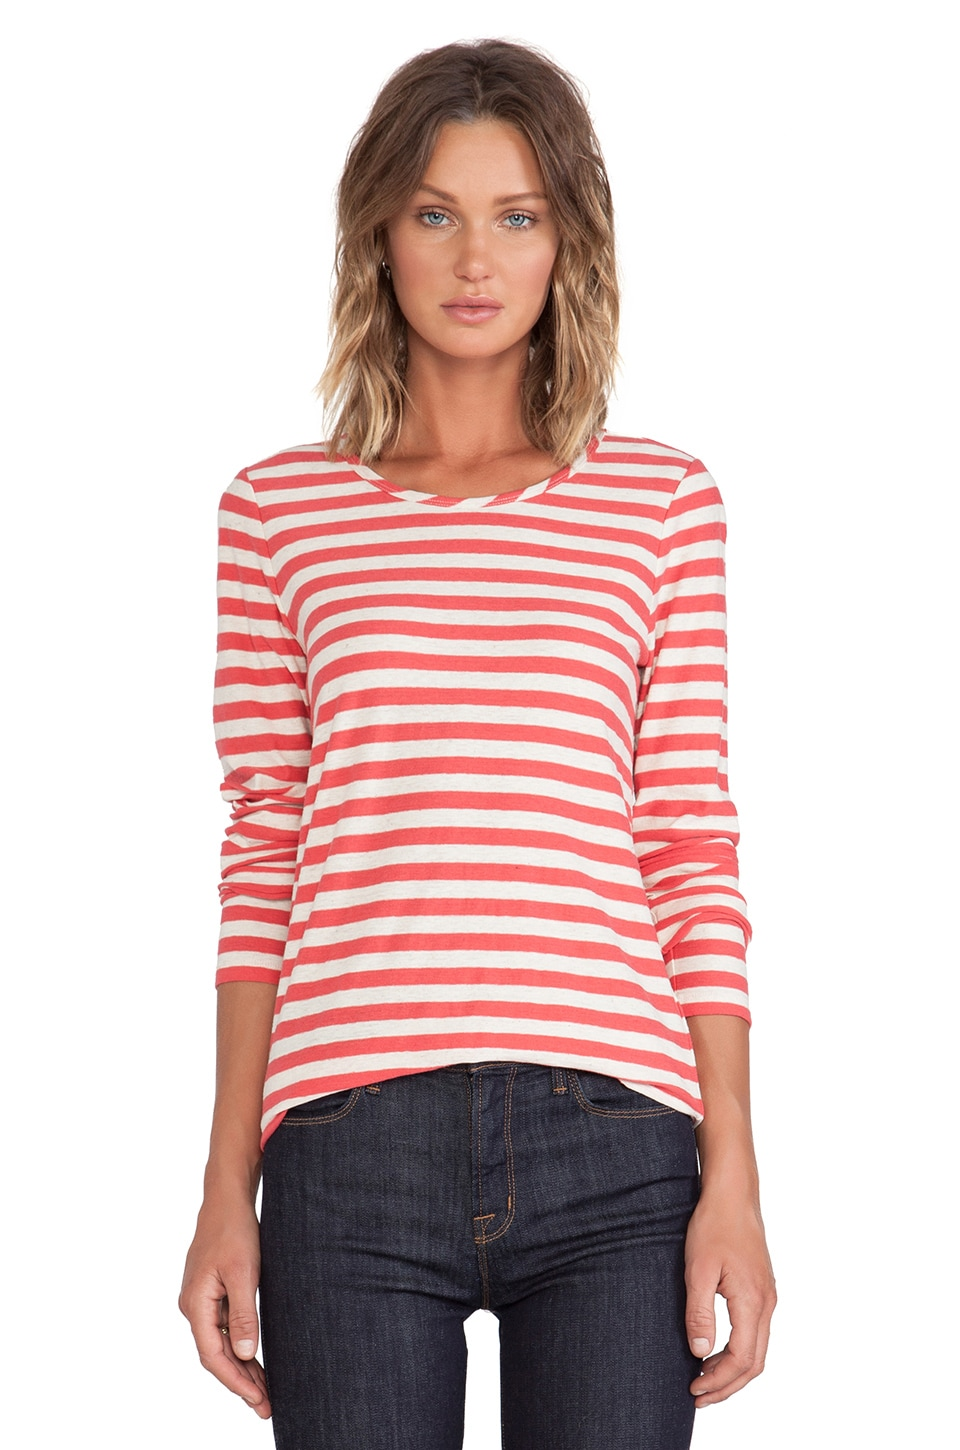 Marc by Marc Jacobs Pam Stripe Jersey Tee in Tabasco Red Multi